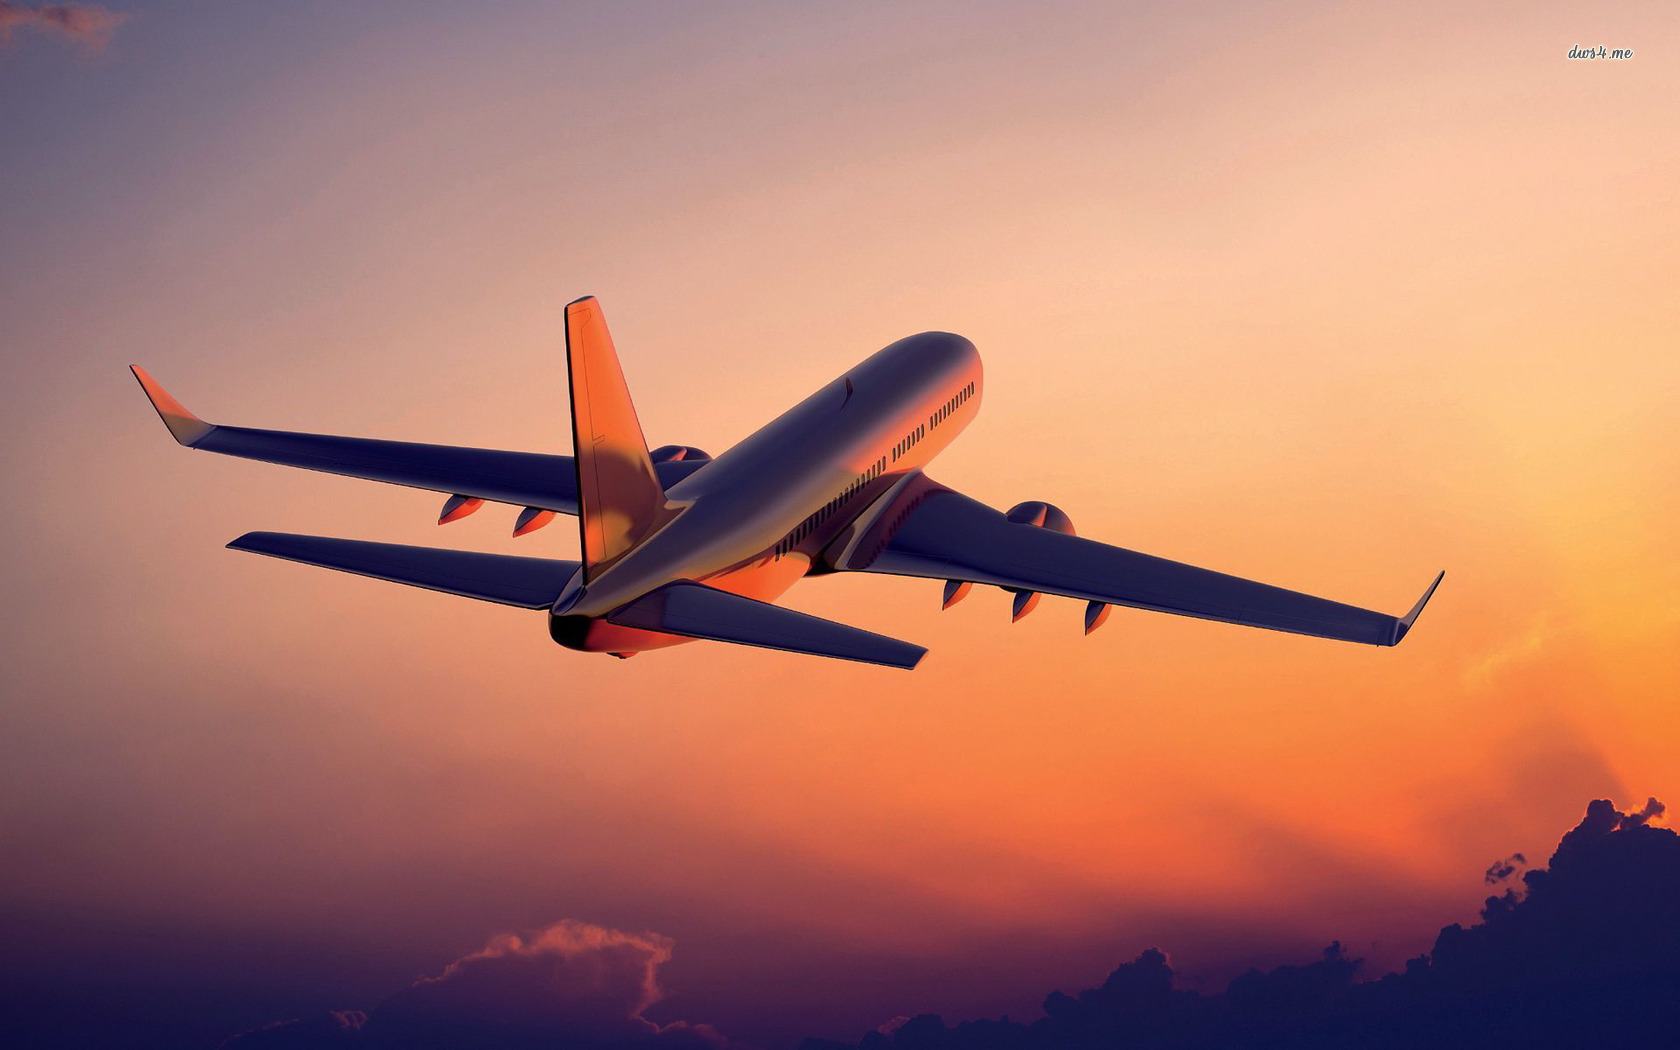 22137-airplane-in-the-sunset-1680×1050-aircraft-wallpaper1.jpg